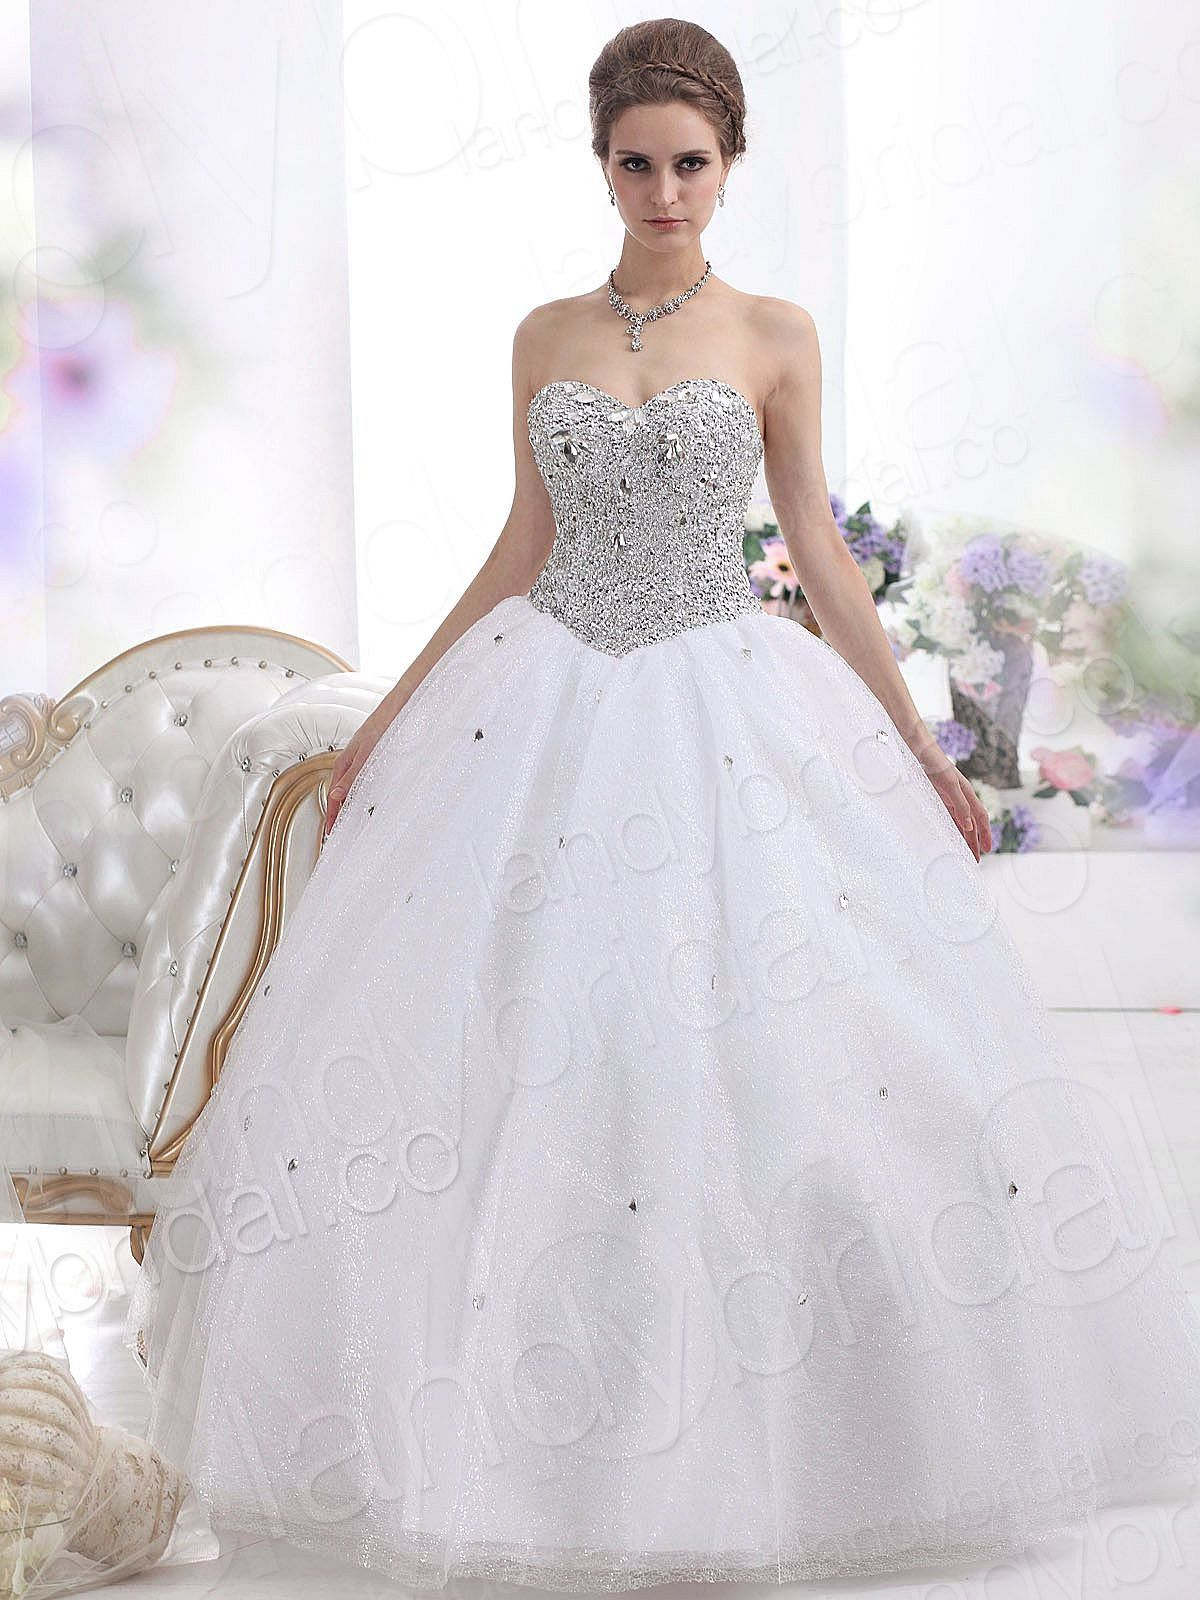 17 Best images about wedding dresses ball gown on Pinterest ...